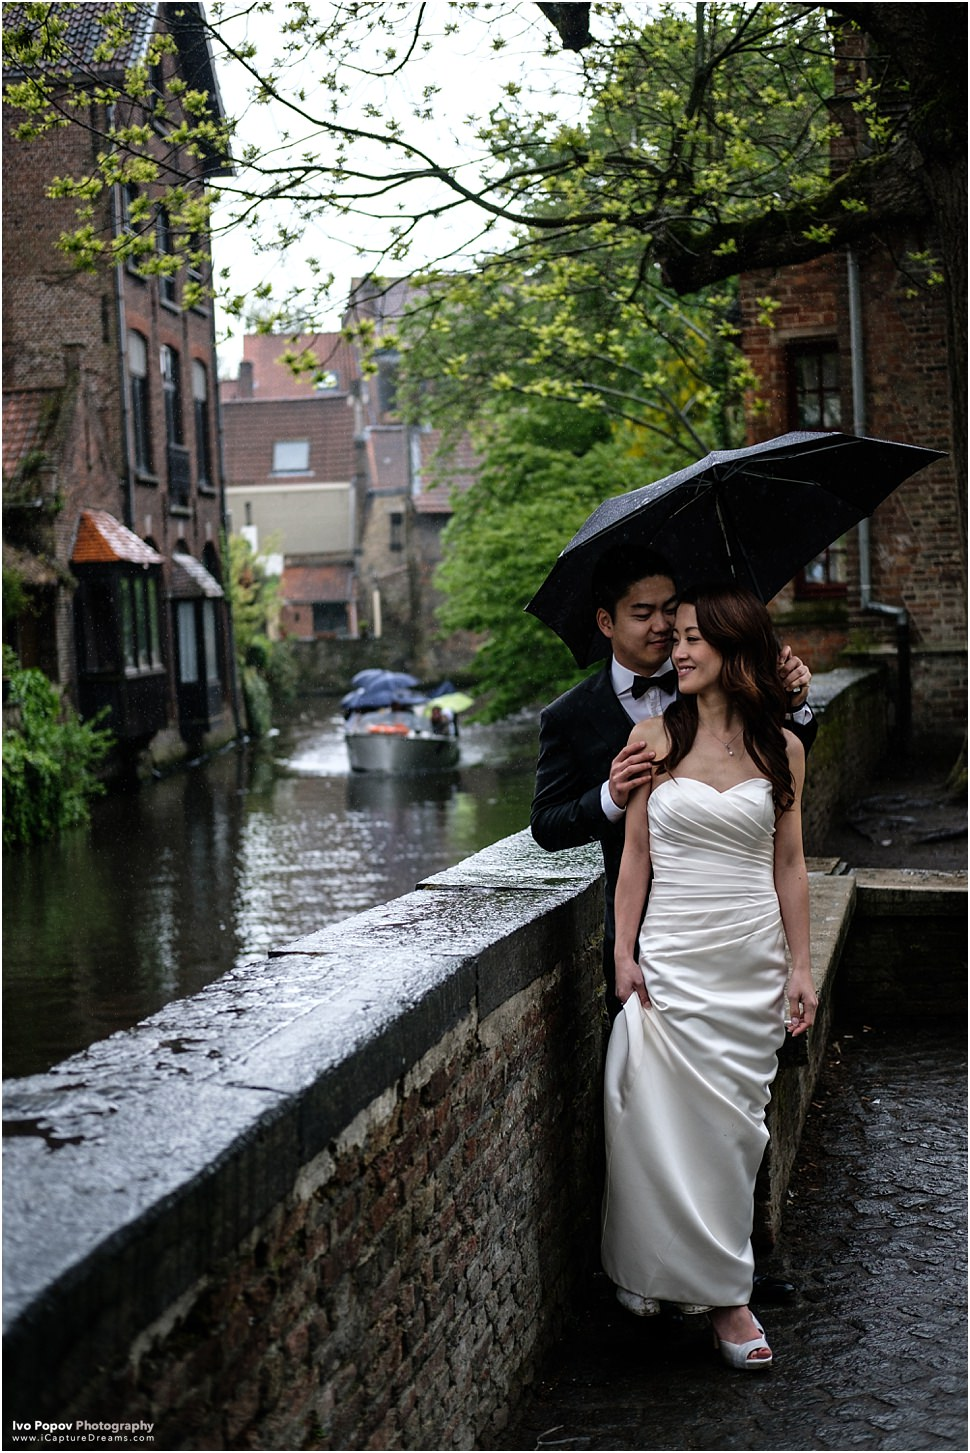 Rainy photo session in Bruges